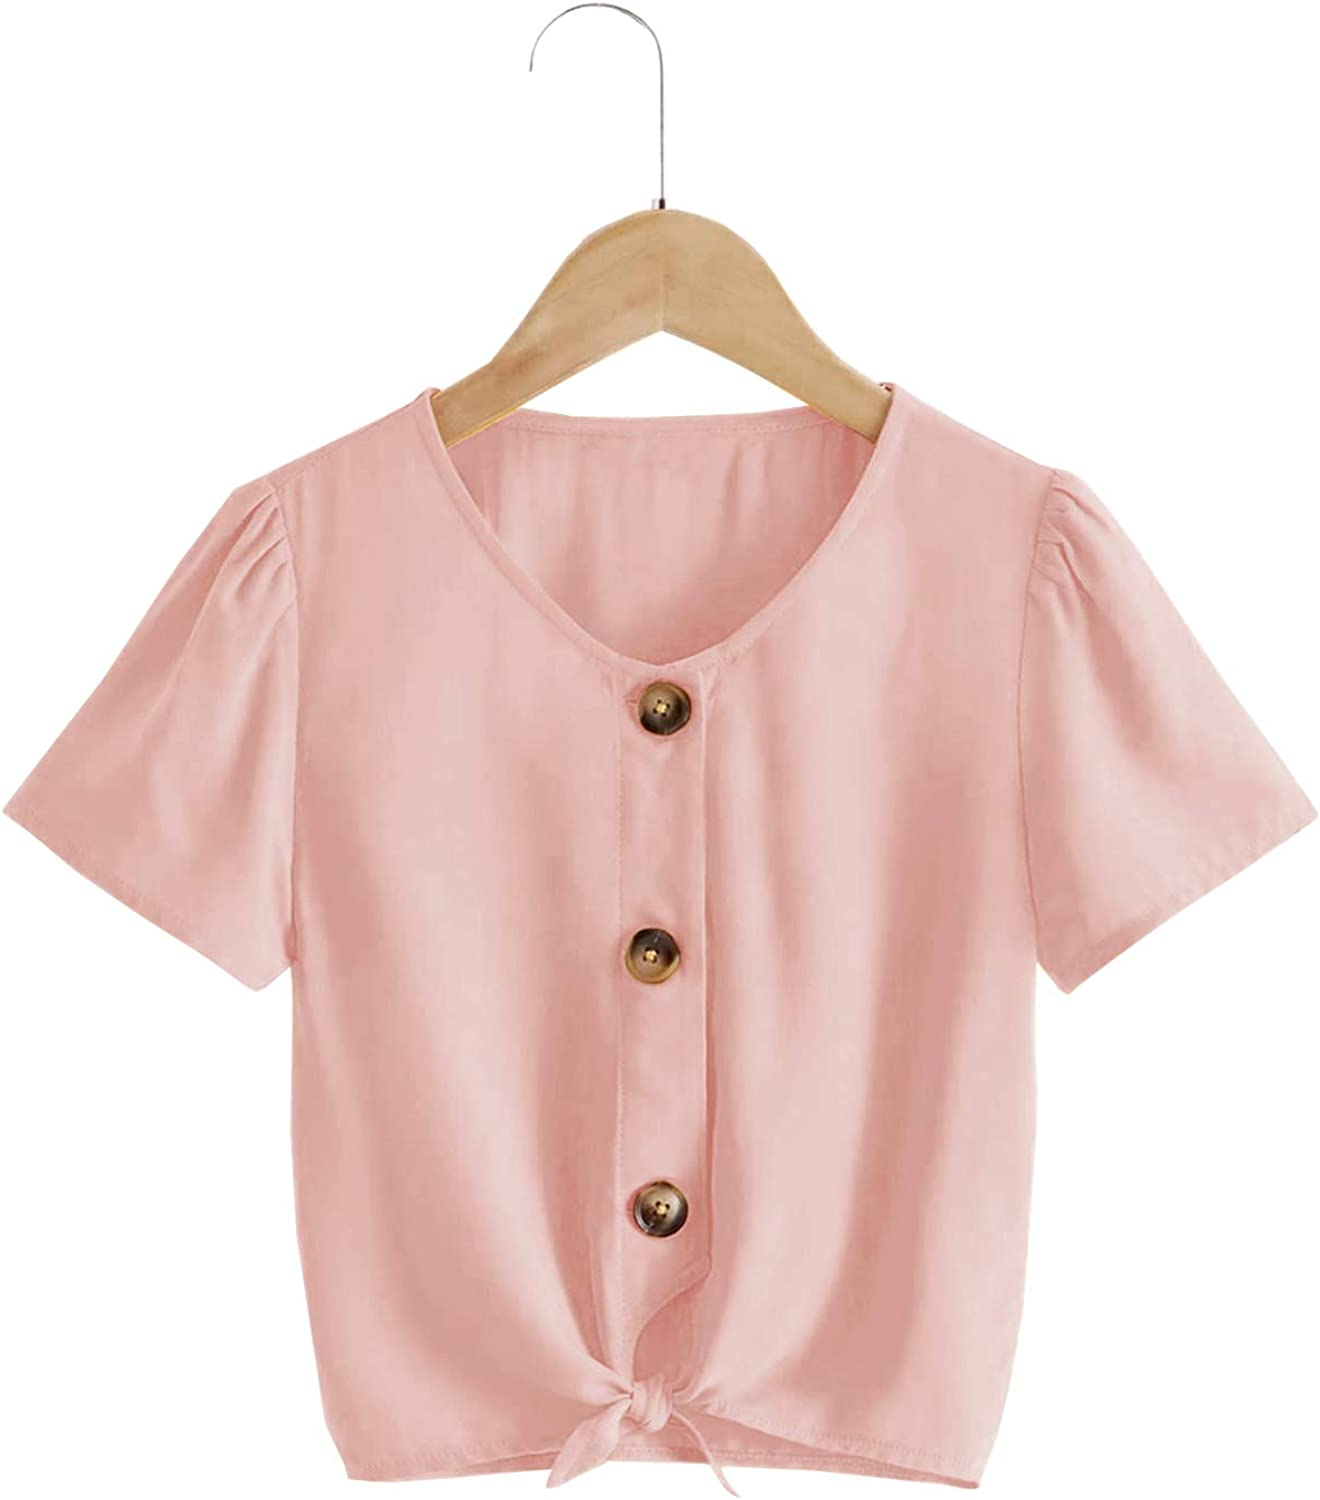 YOBECHO Girl Kids Summer Tie Front Knot Short Sleeve Shirts Button Up Cute Tunic Tops Blouse